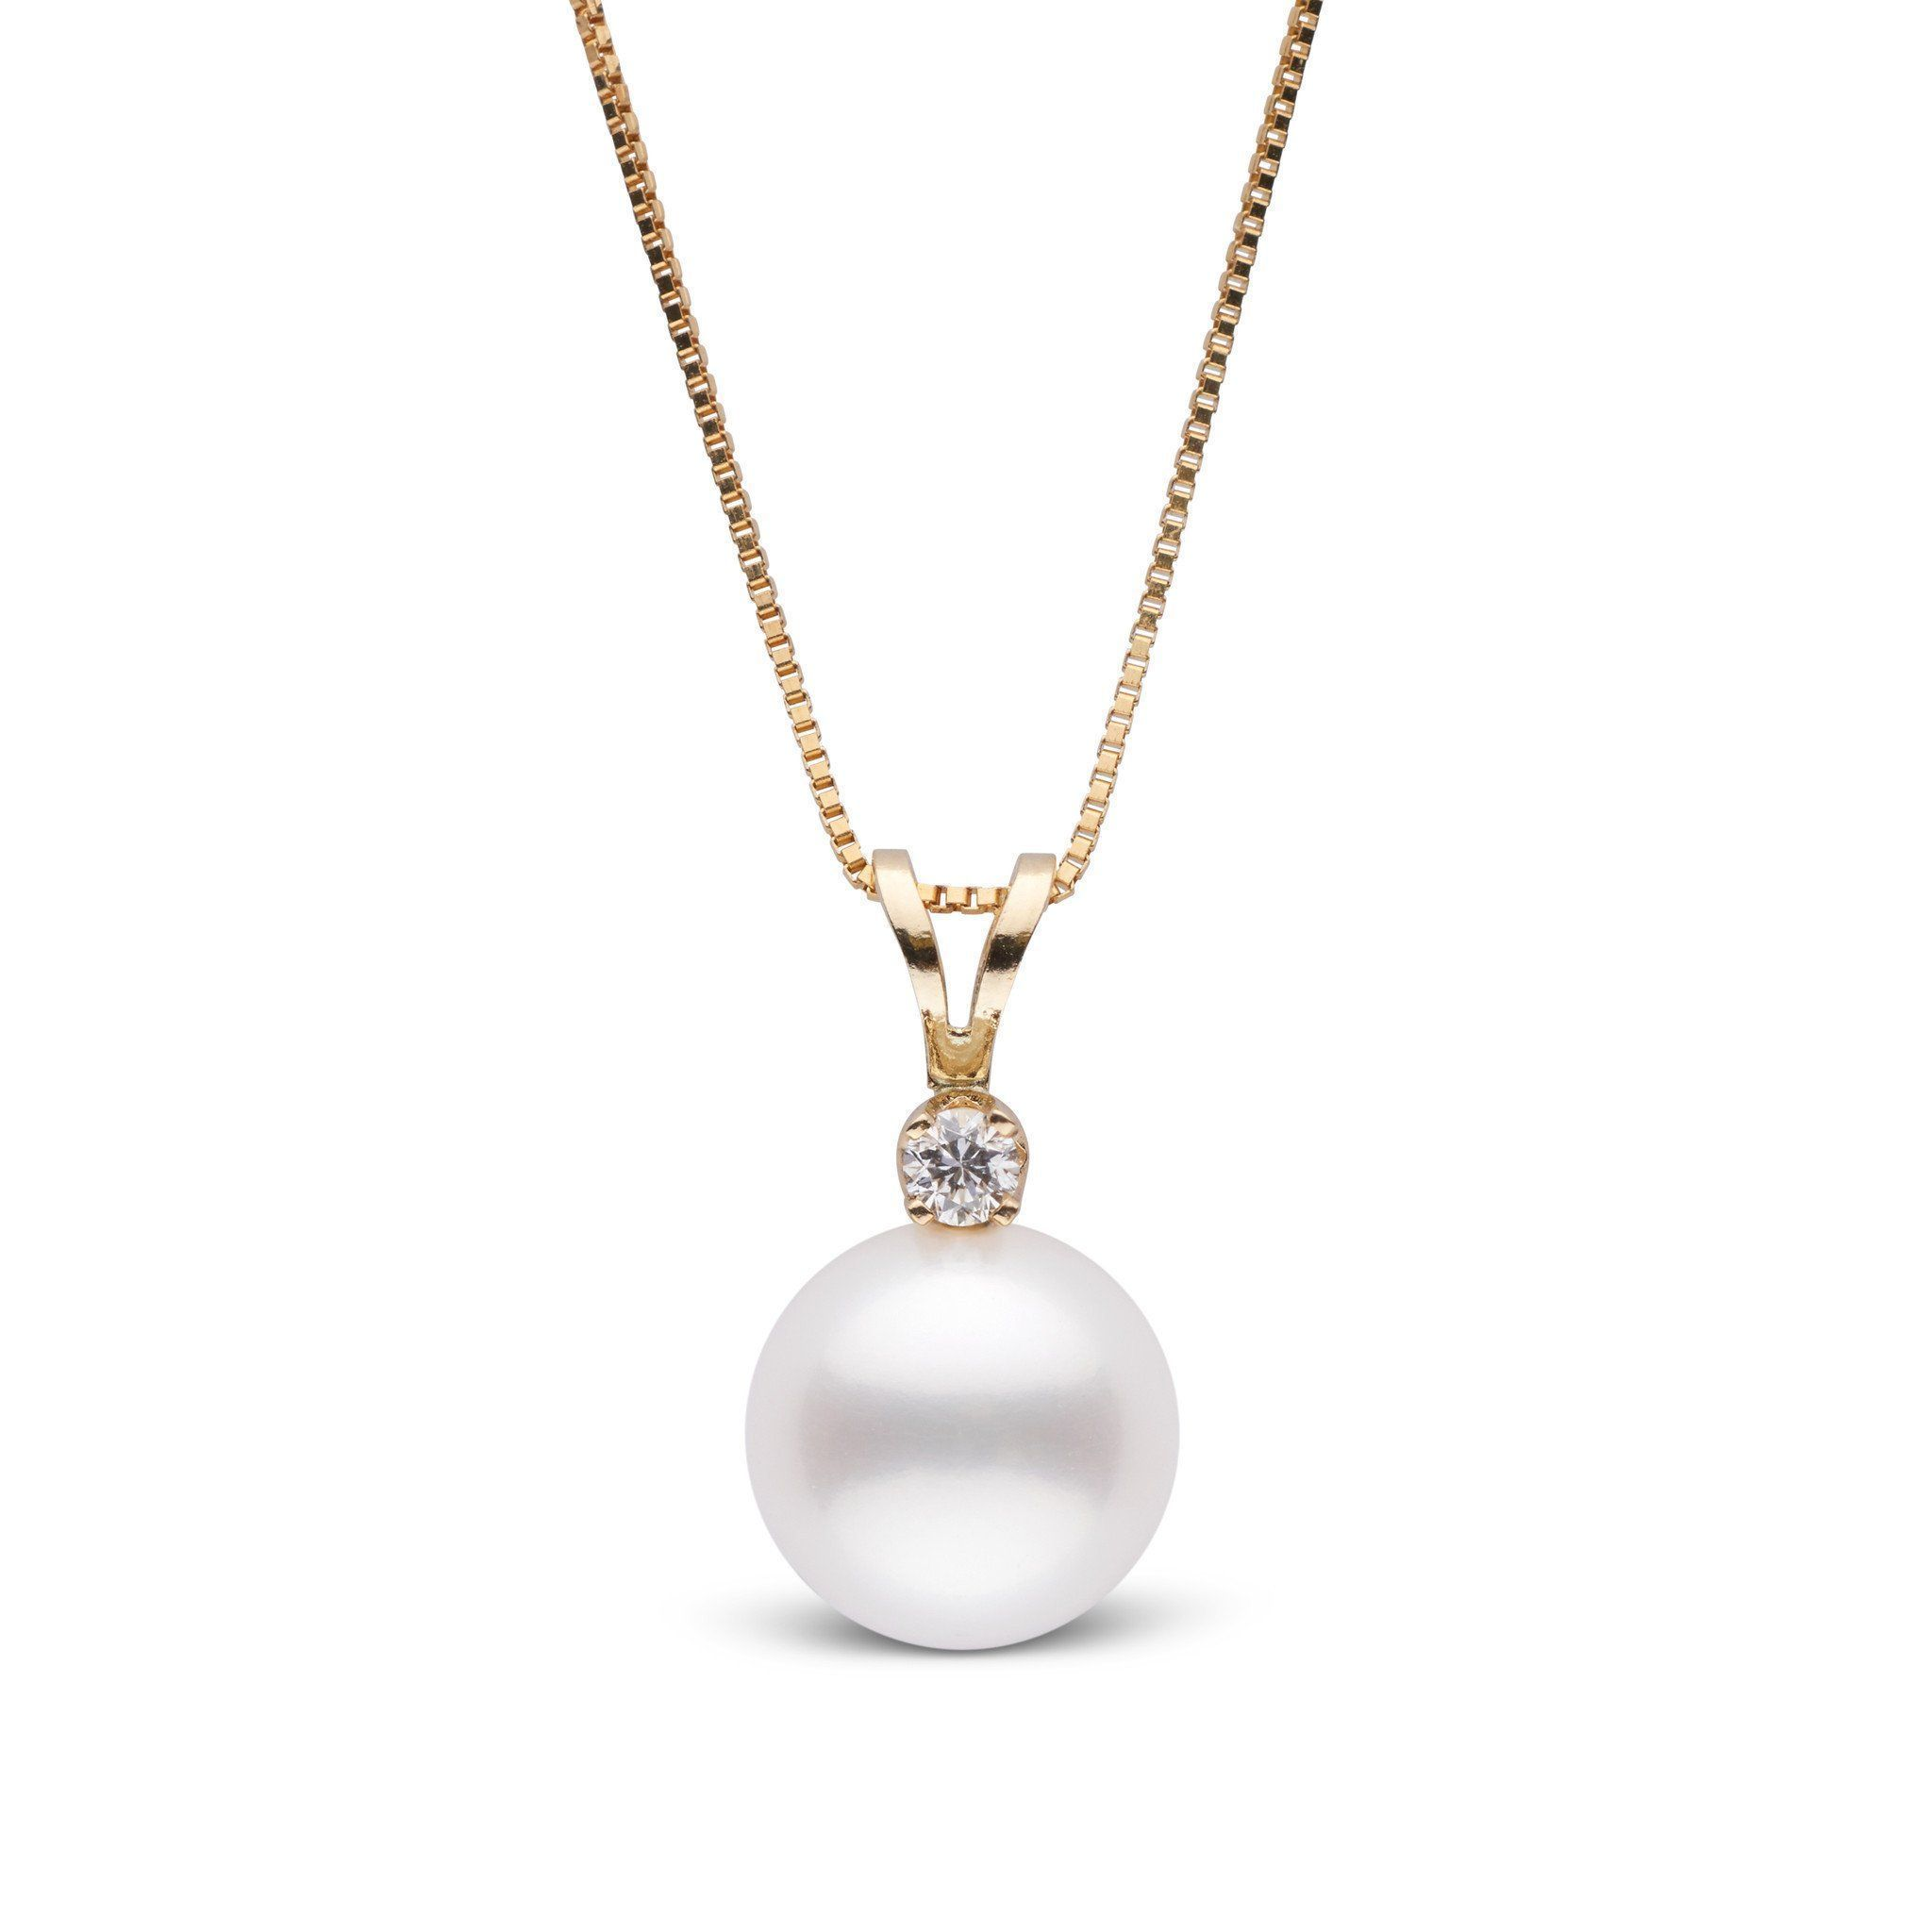 Harmony Collection 9.0-10.0 mm Freshadama Freshwater Pearl & Diamond Pendant